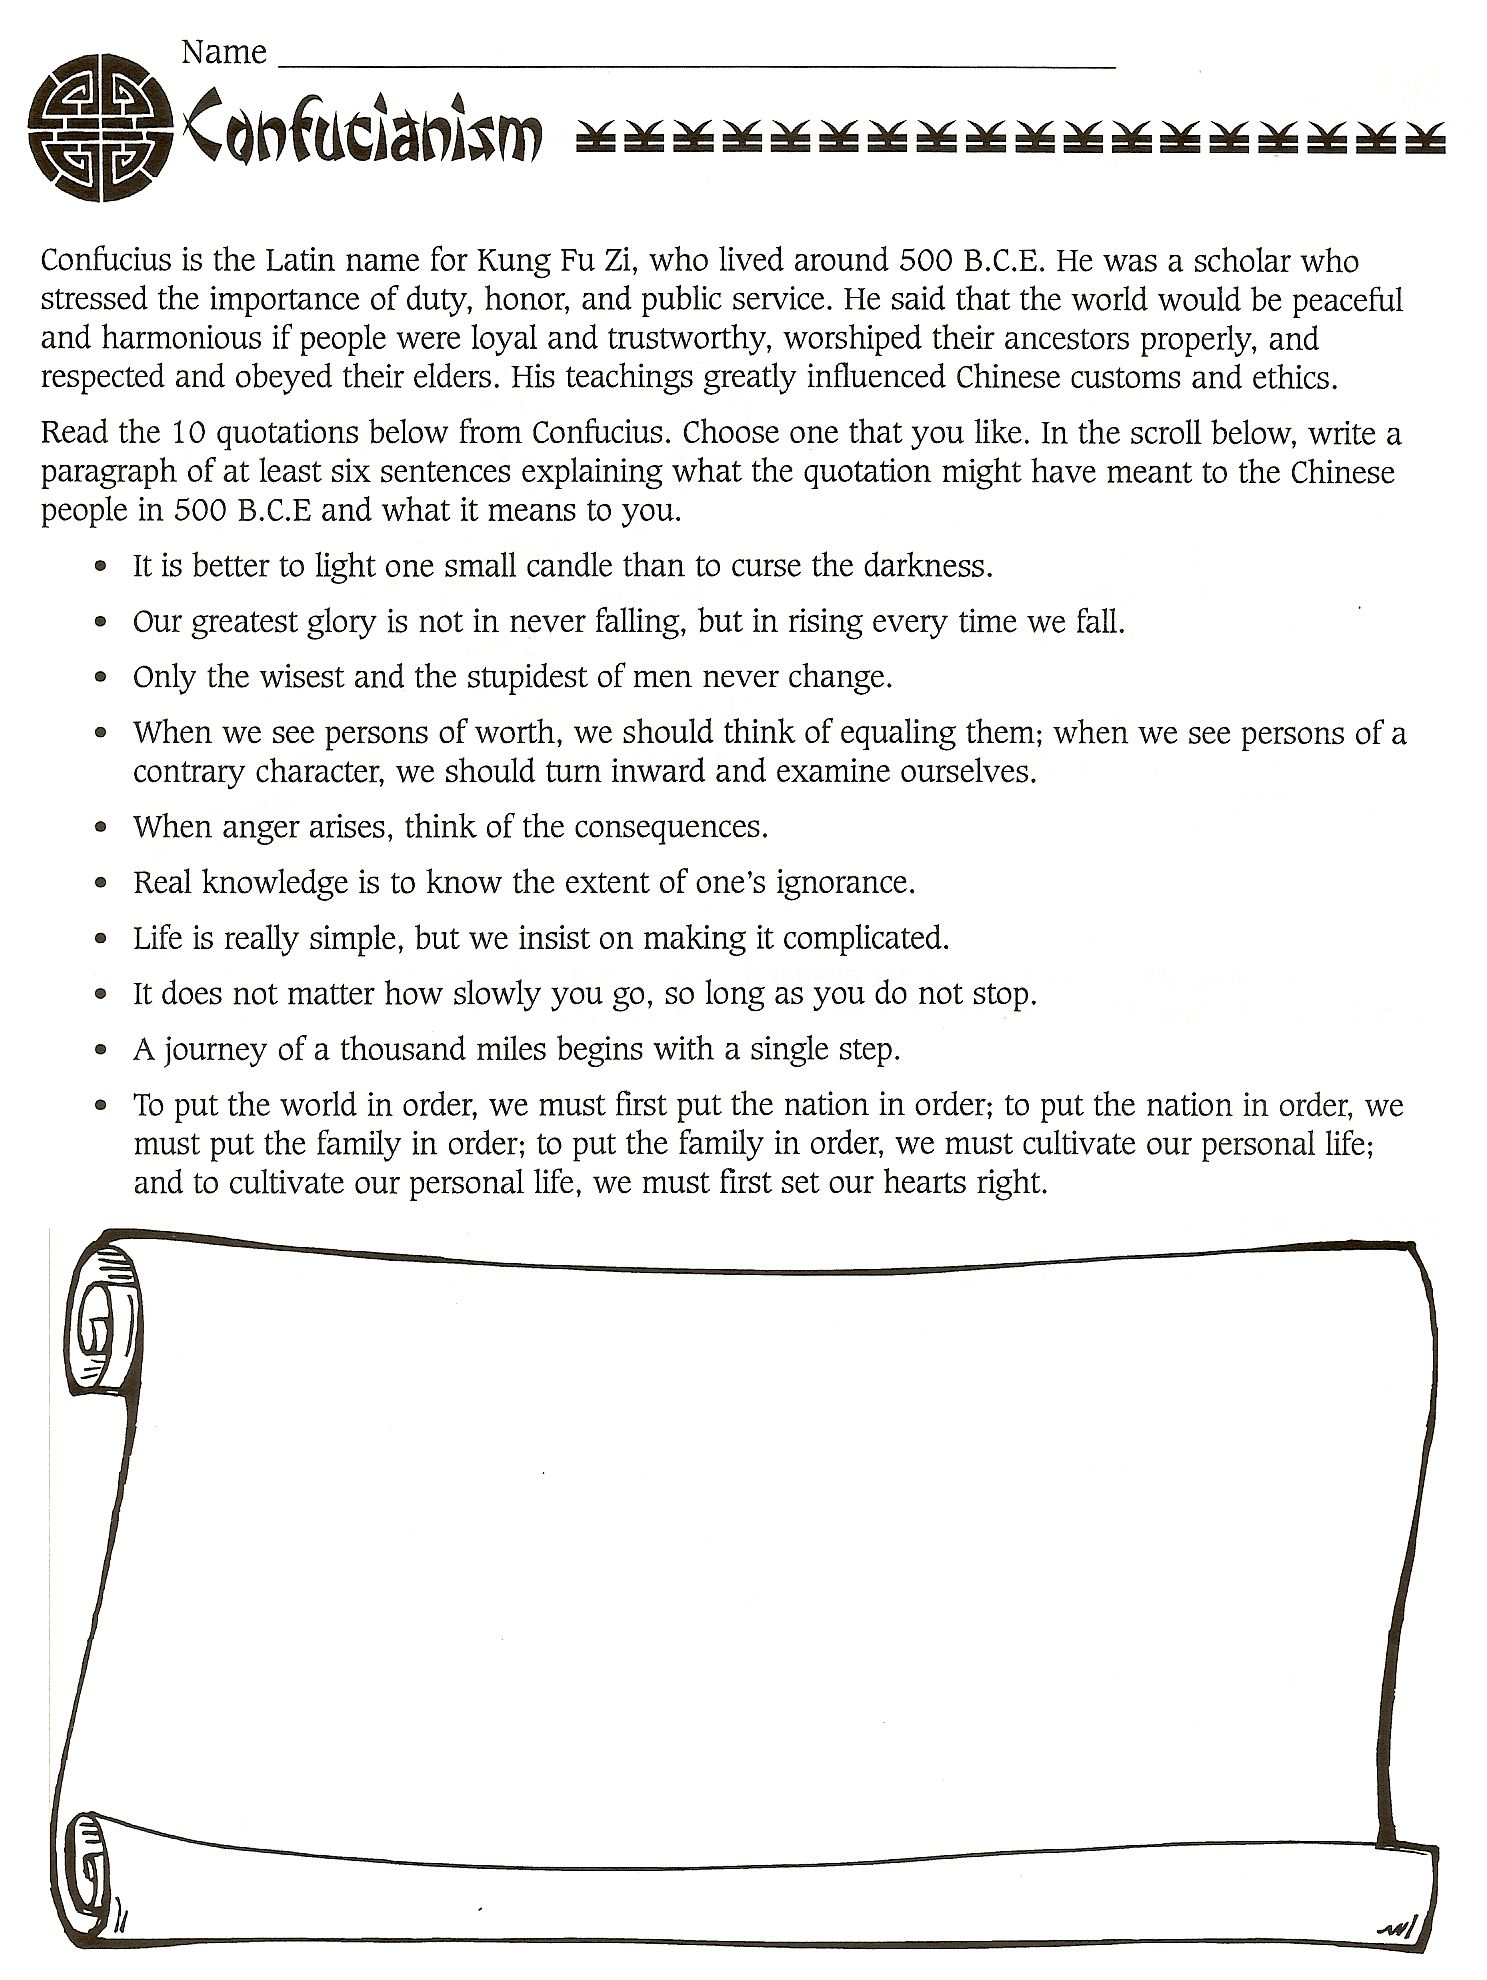 China Buddhism Worksheet